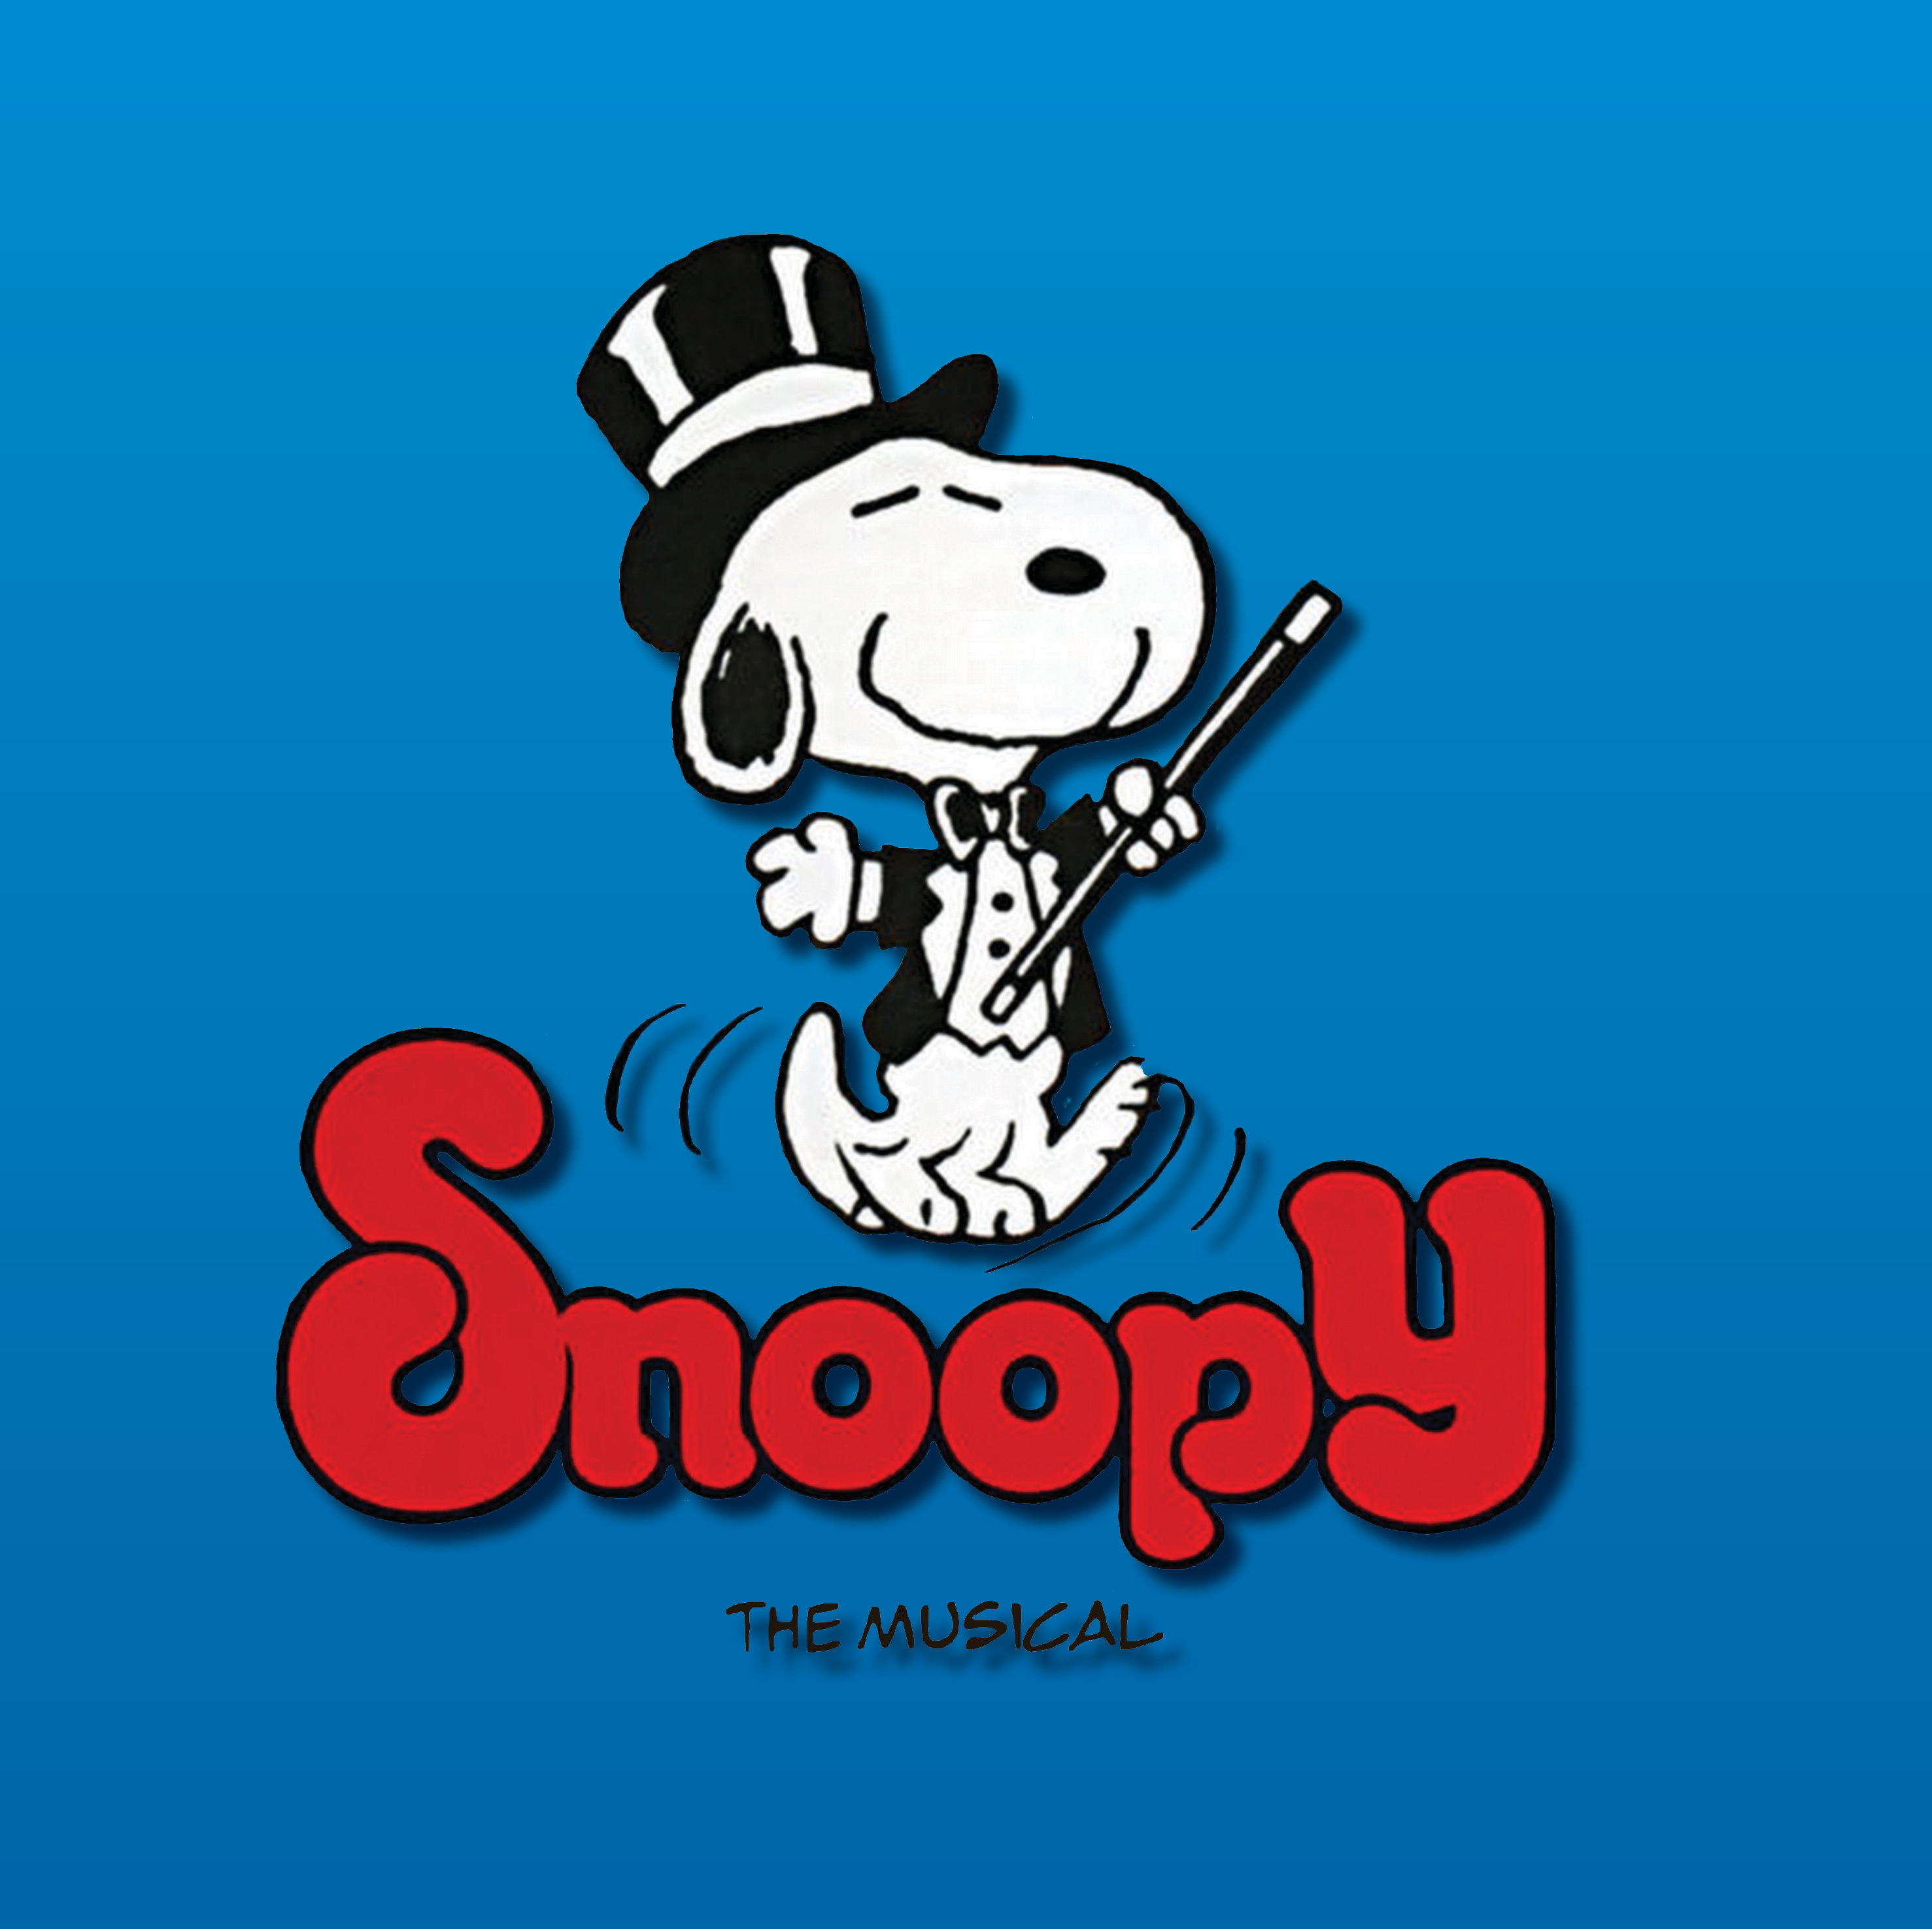 snoopy the musical artscape theatre centre cape town